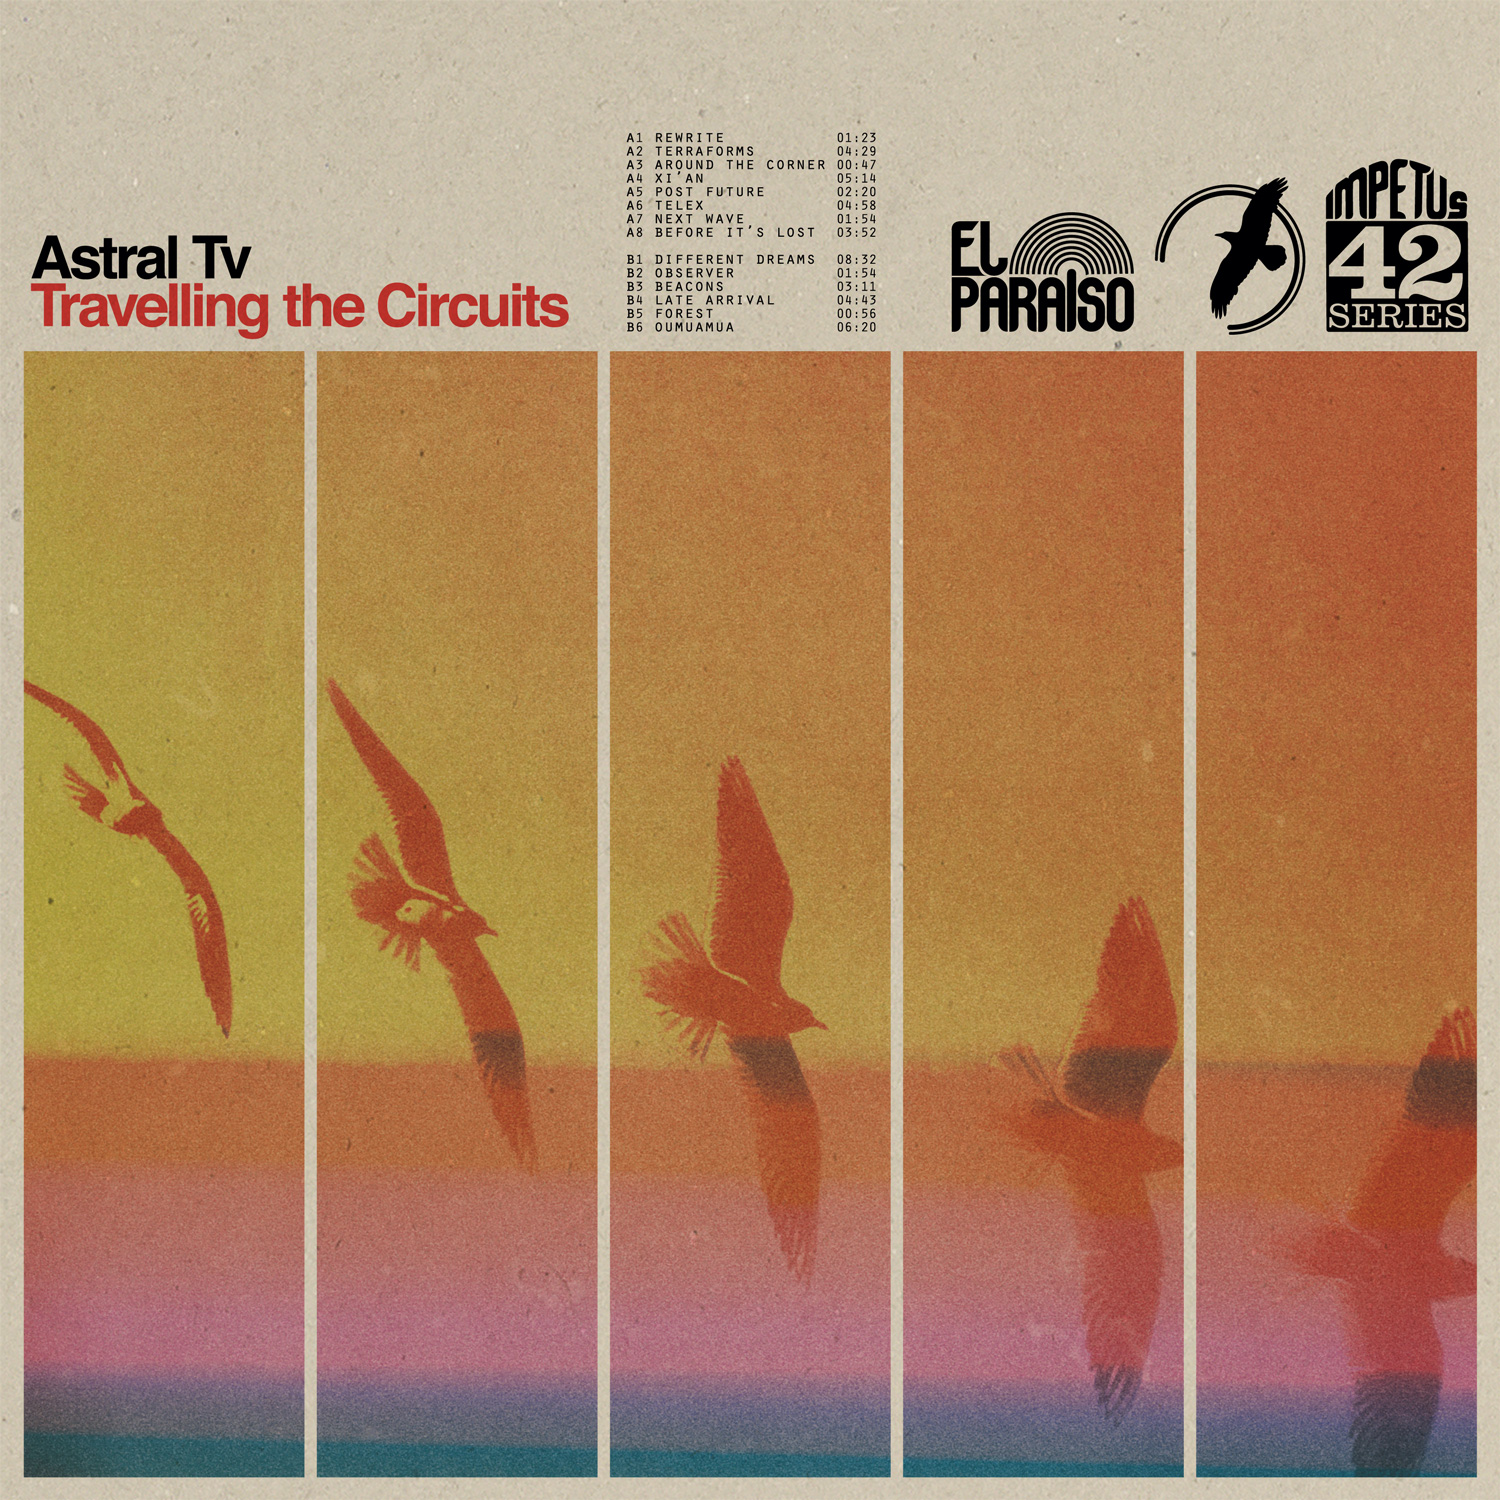 Astral TV — Travelling the Circuits